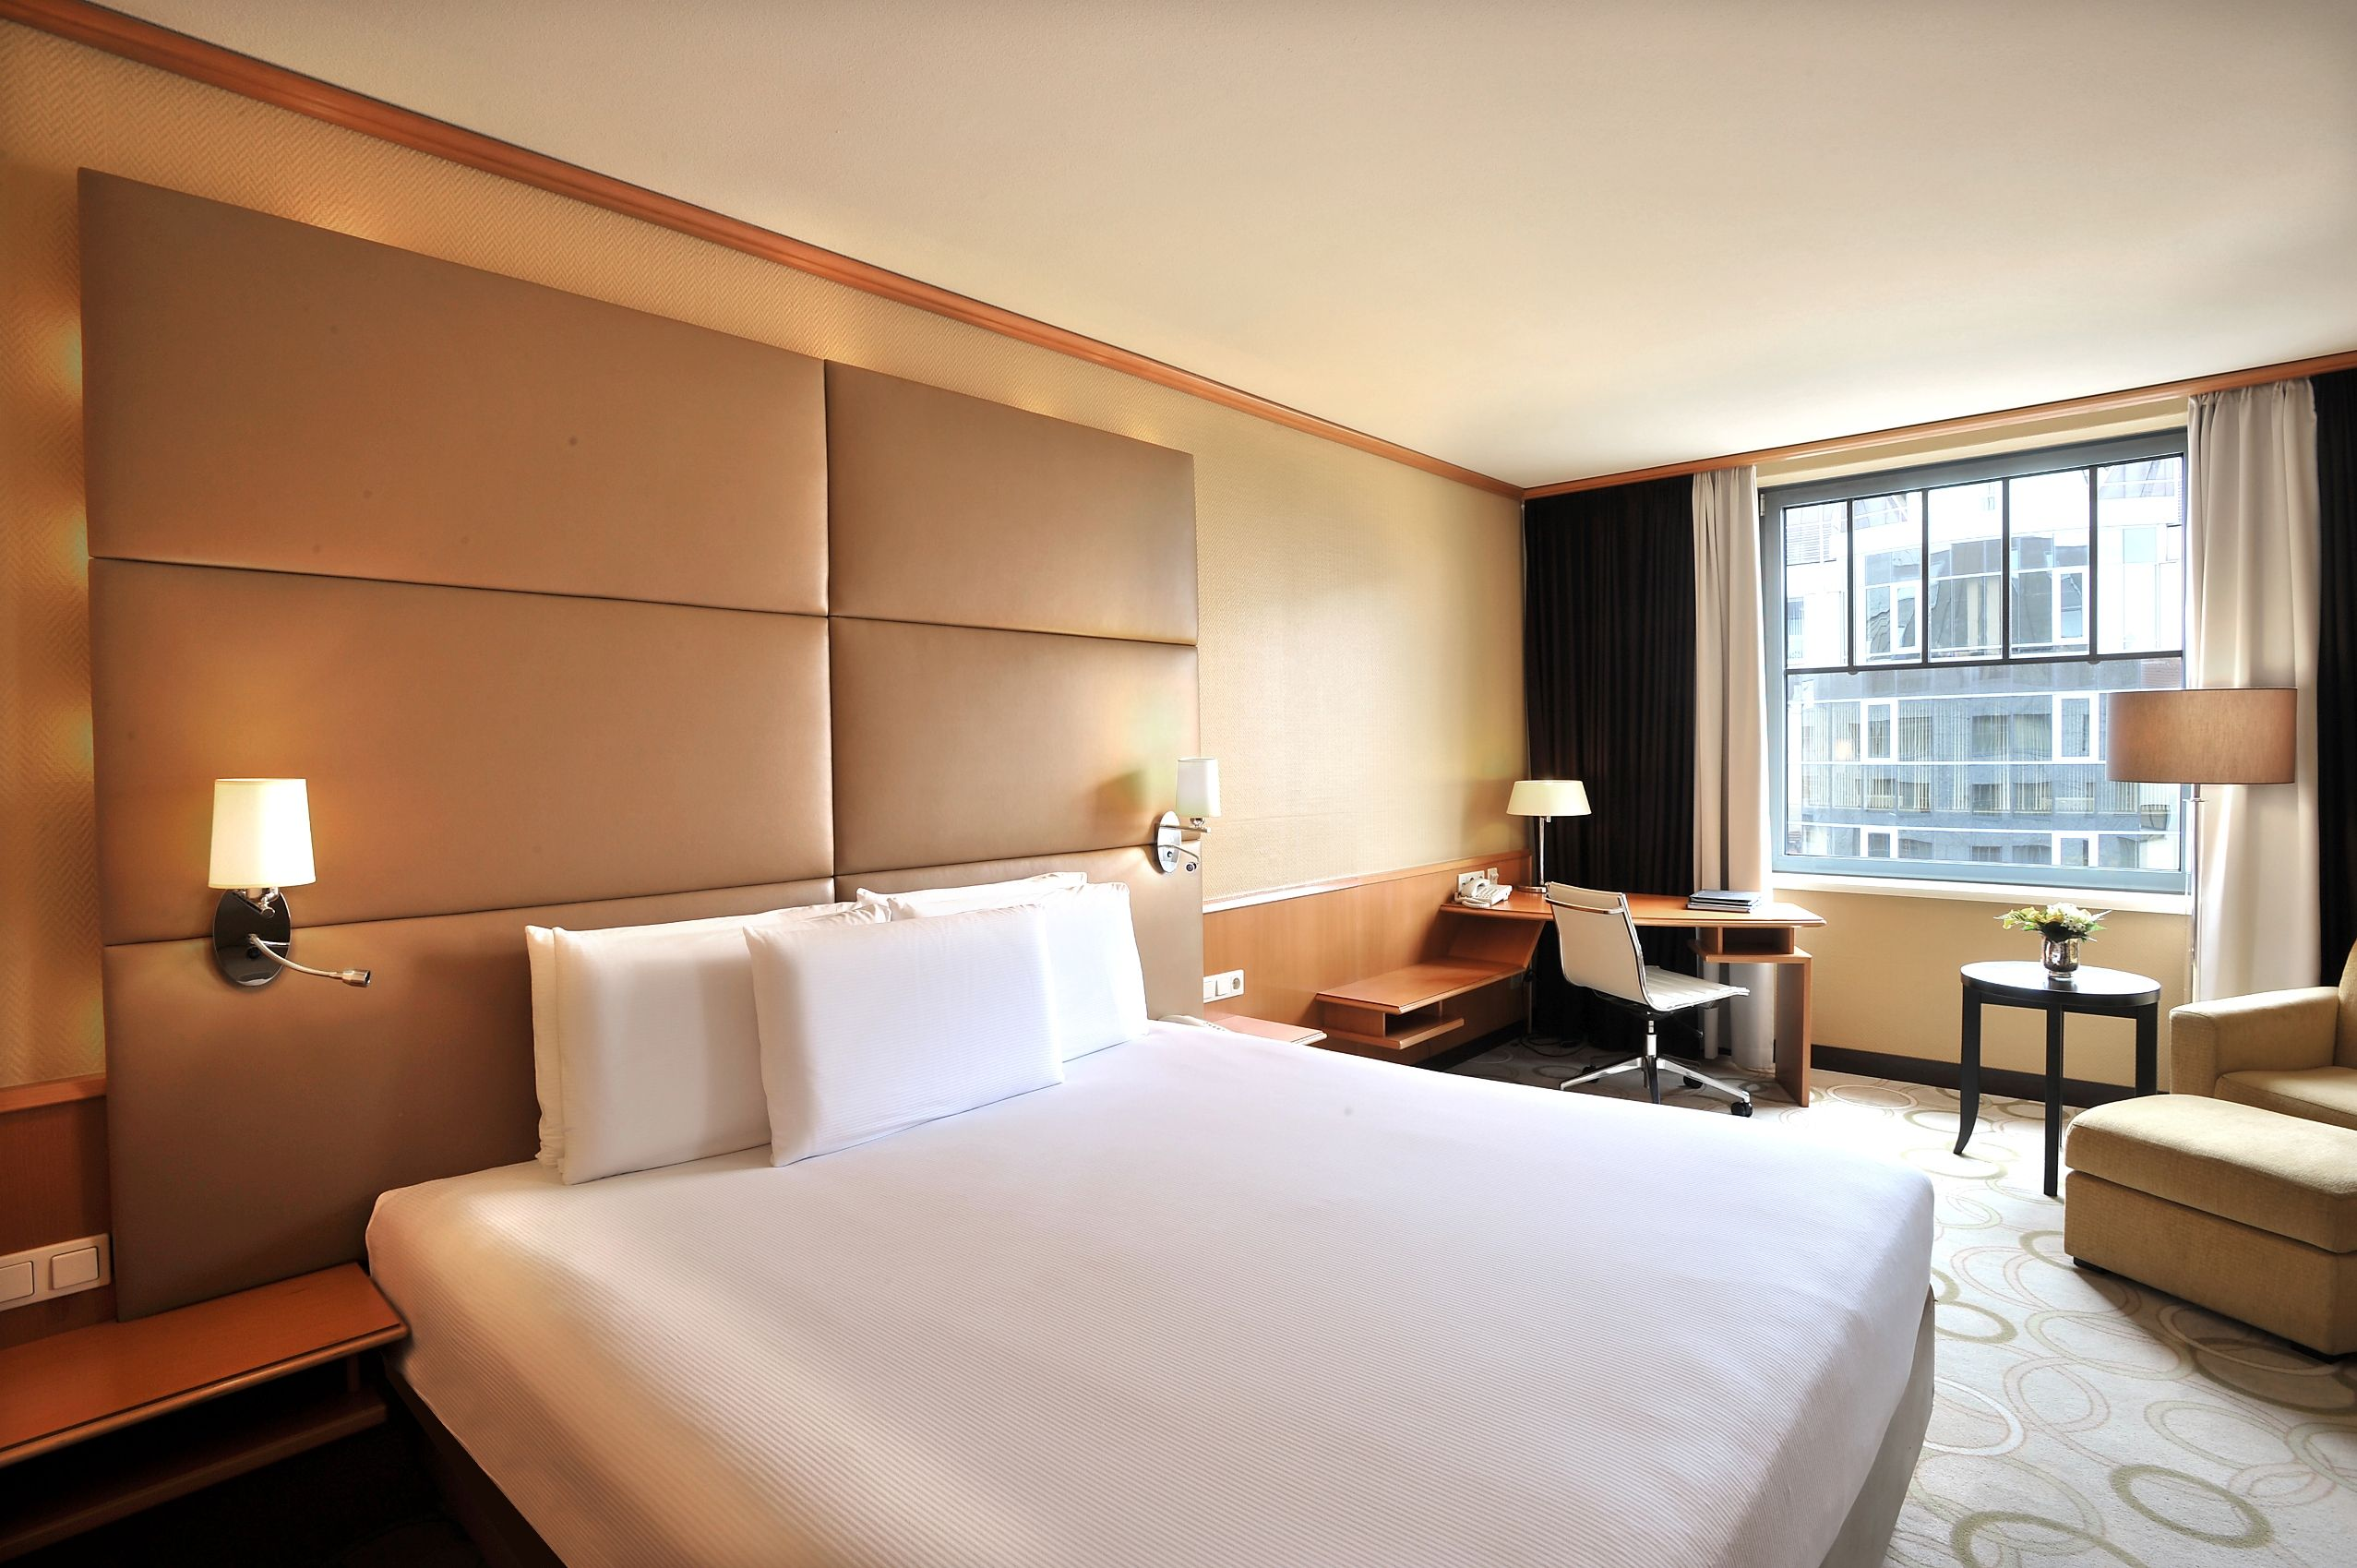 king hilton guest room welcome to this bright and airy room with